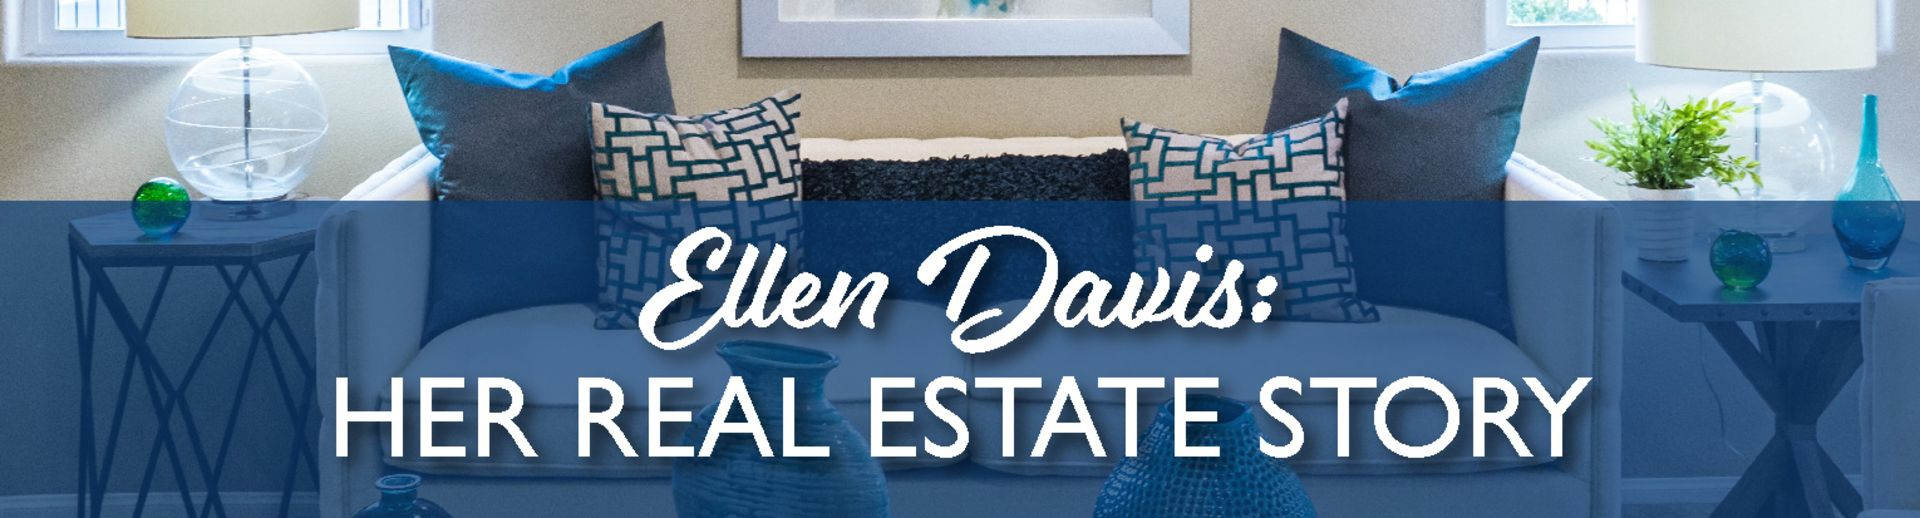 Ellen Davis' Real Estate Story